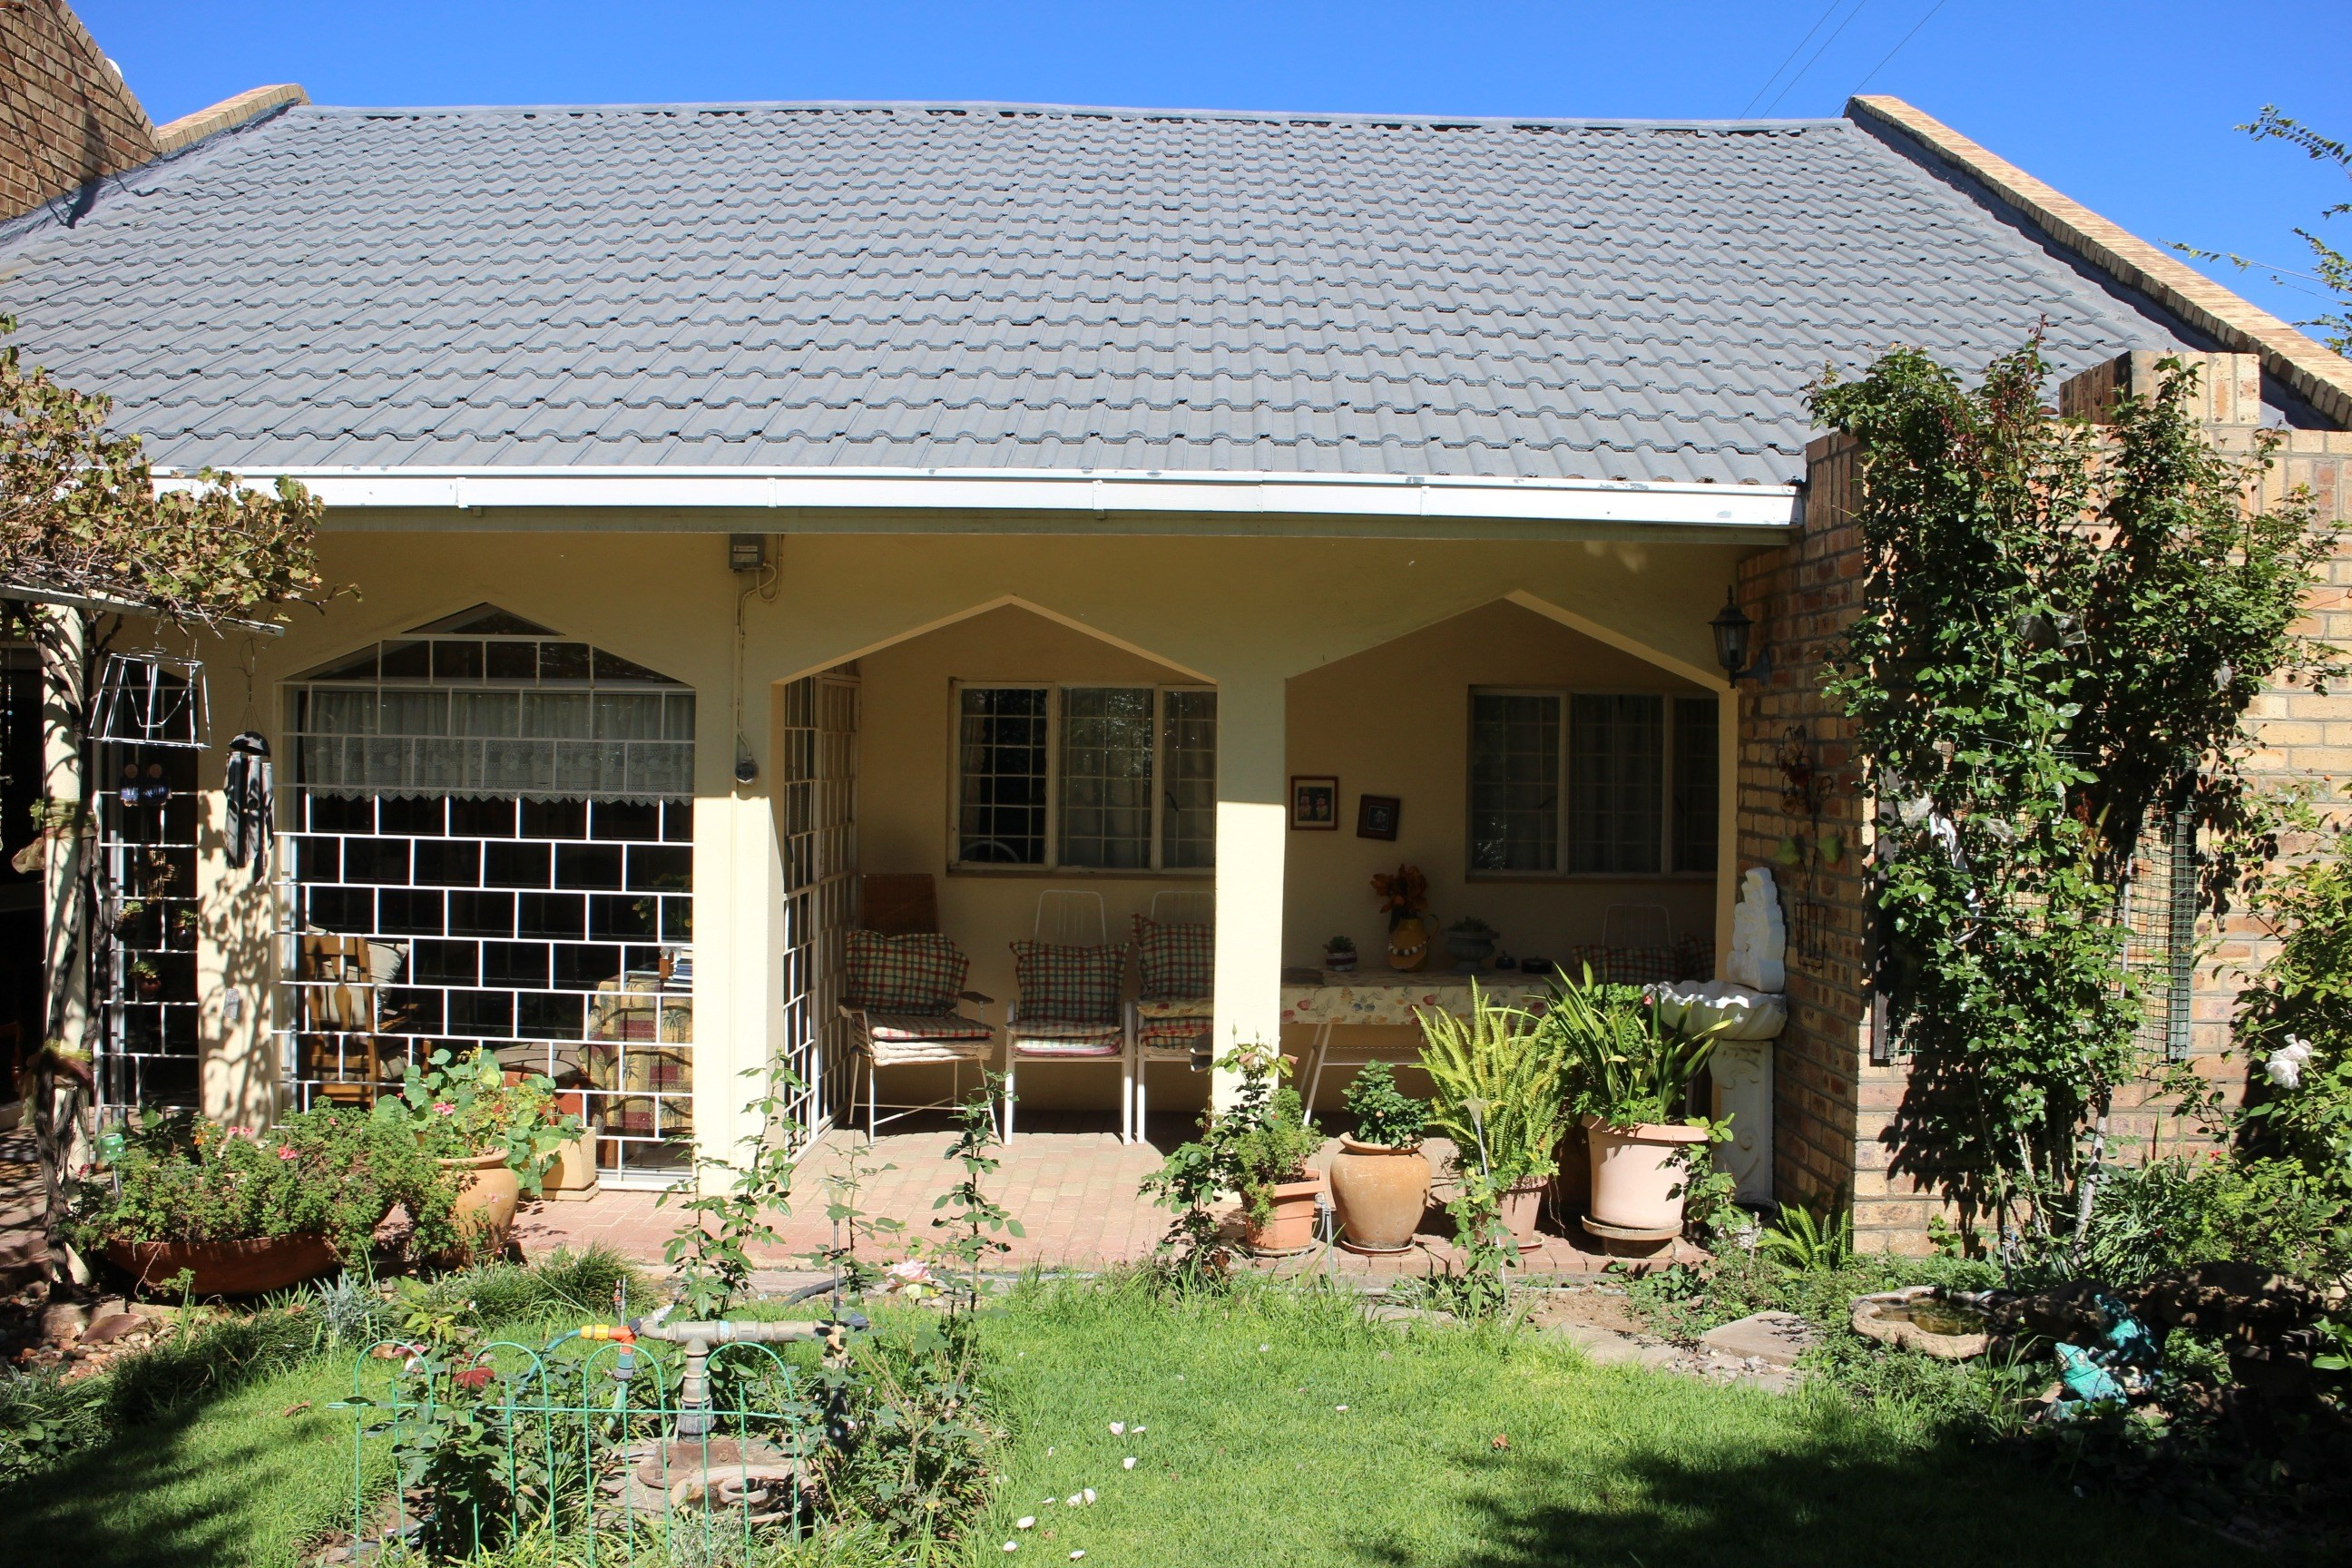 4 Bedroom House for Sale in Ventersburg